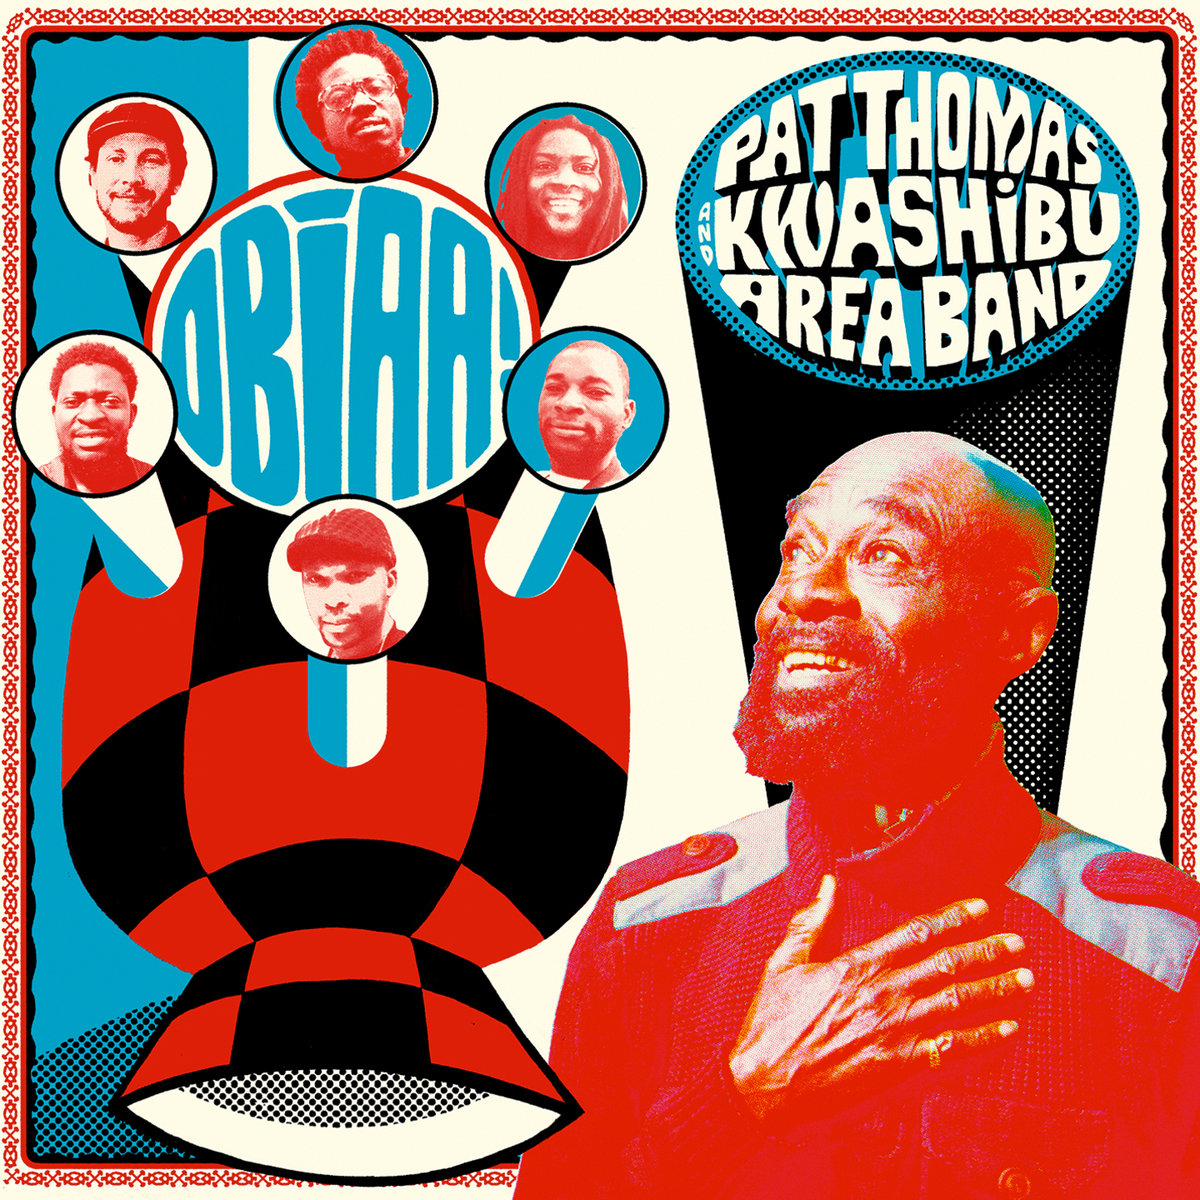 PAT THOMAS & KWASHIBU AREA BAND - OBIAA! -buythewax